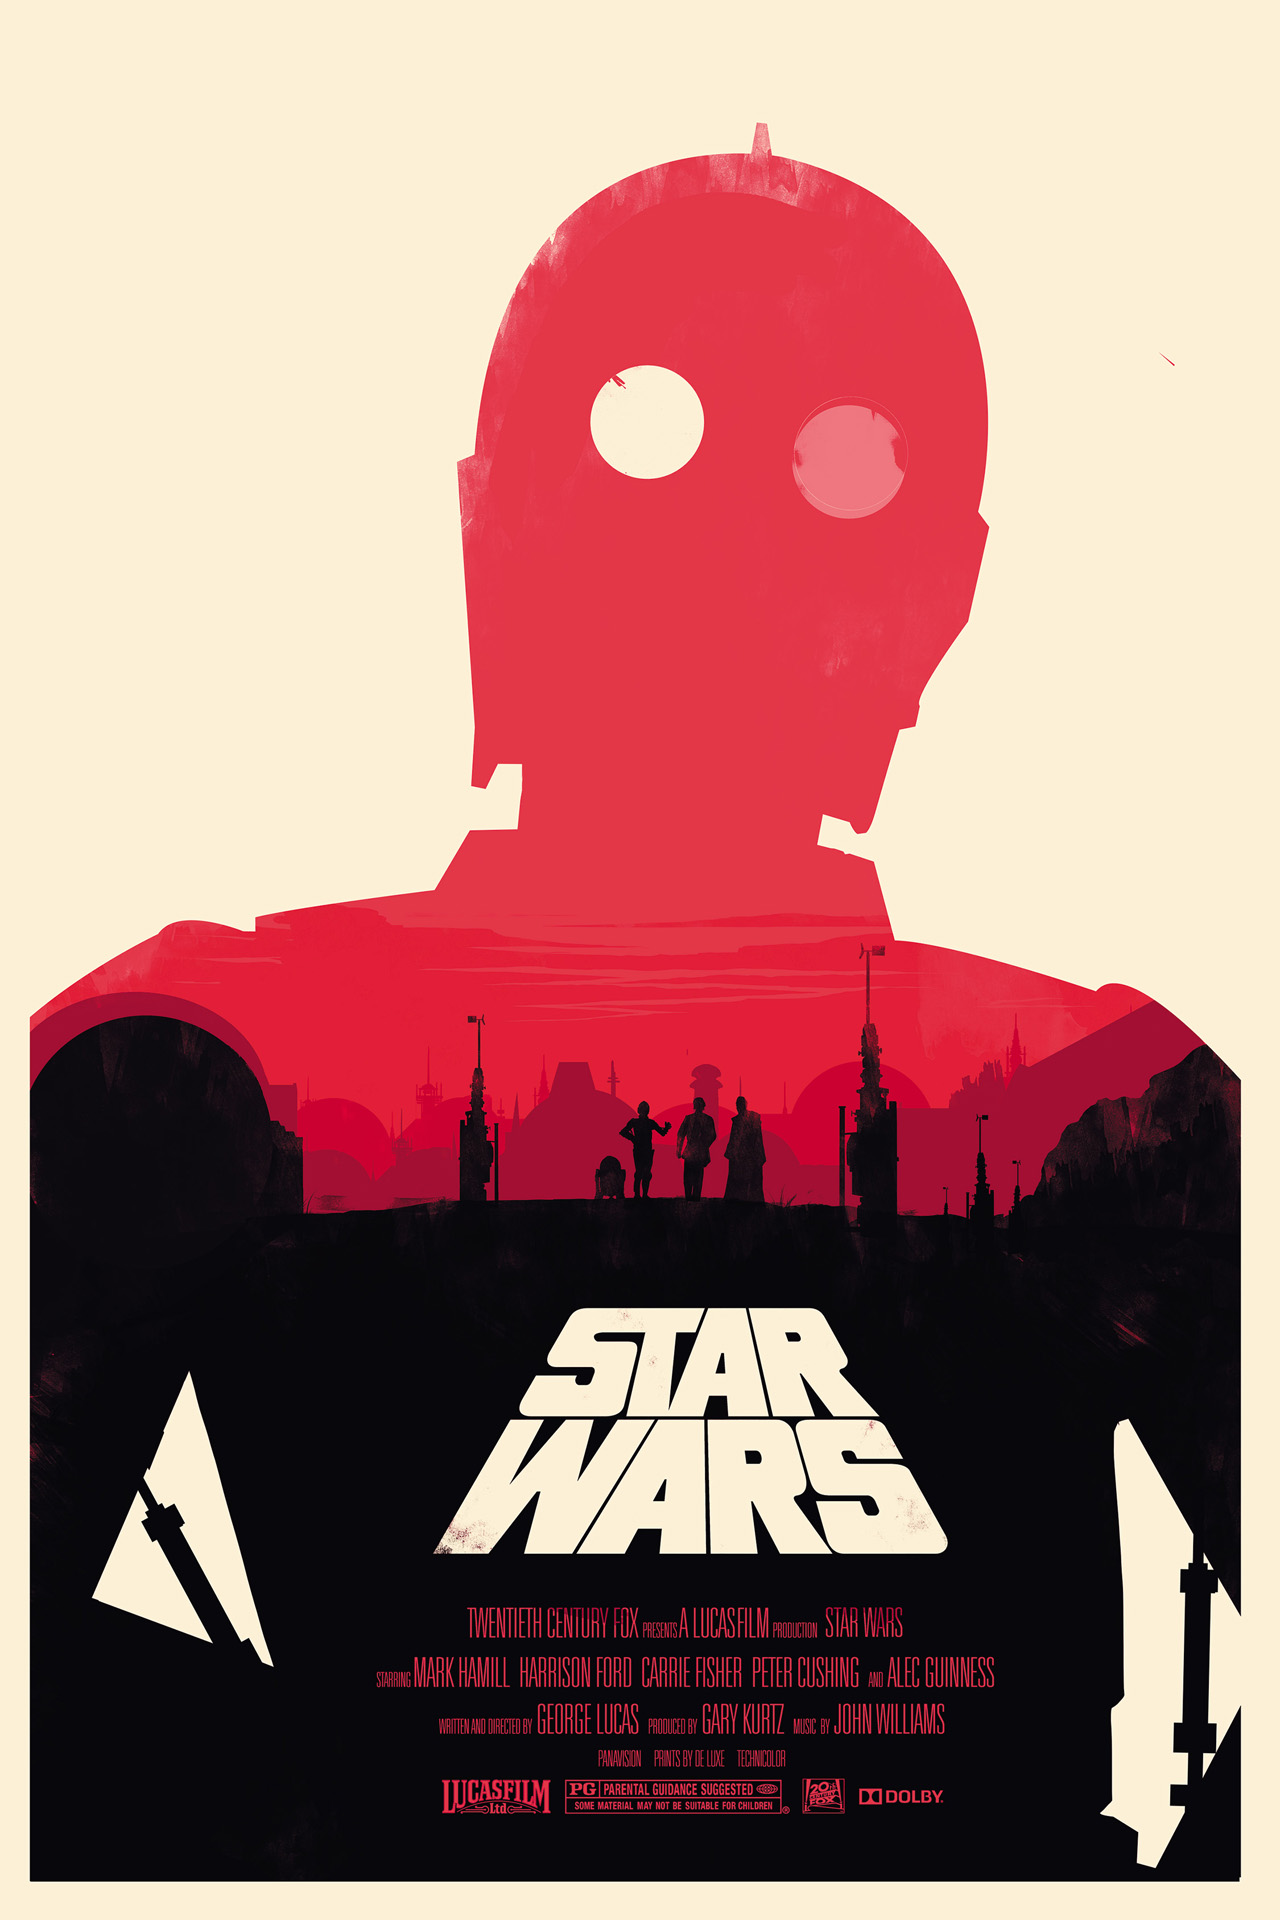 Star Wars Art: Posters - Special Preview | StarWars.com